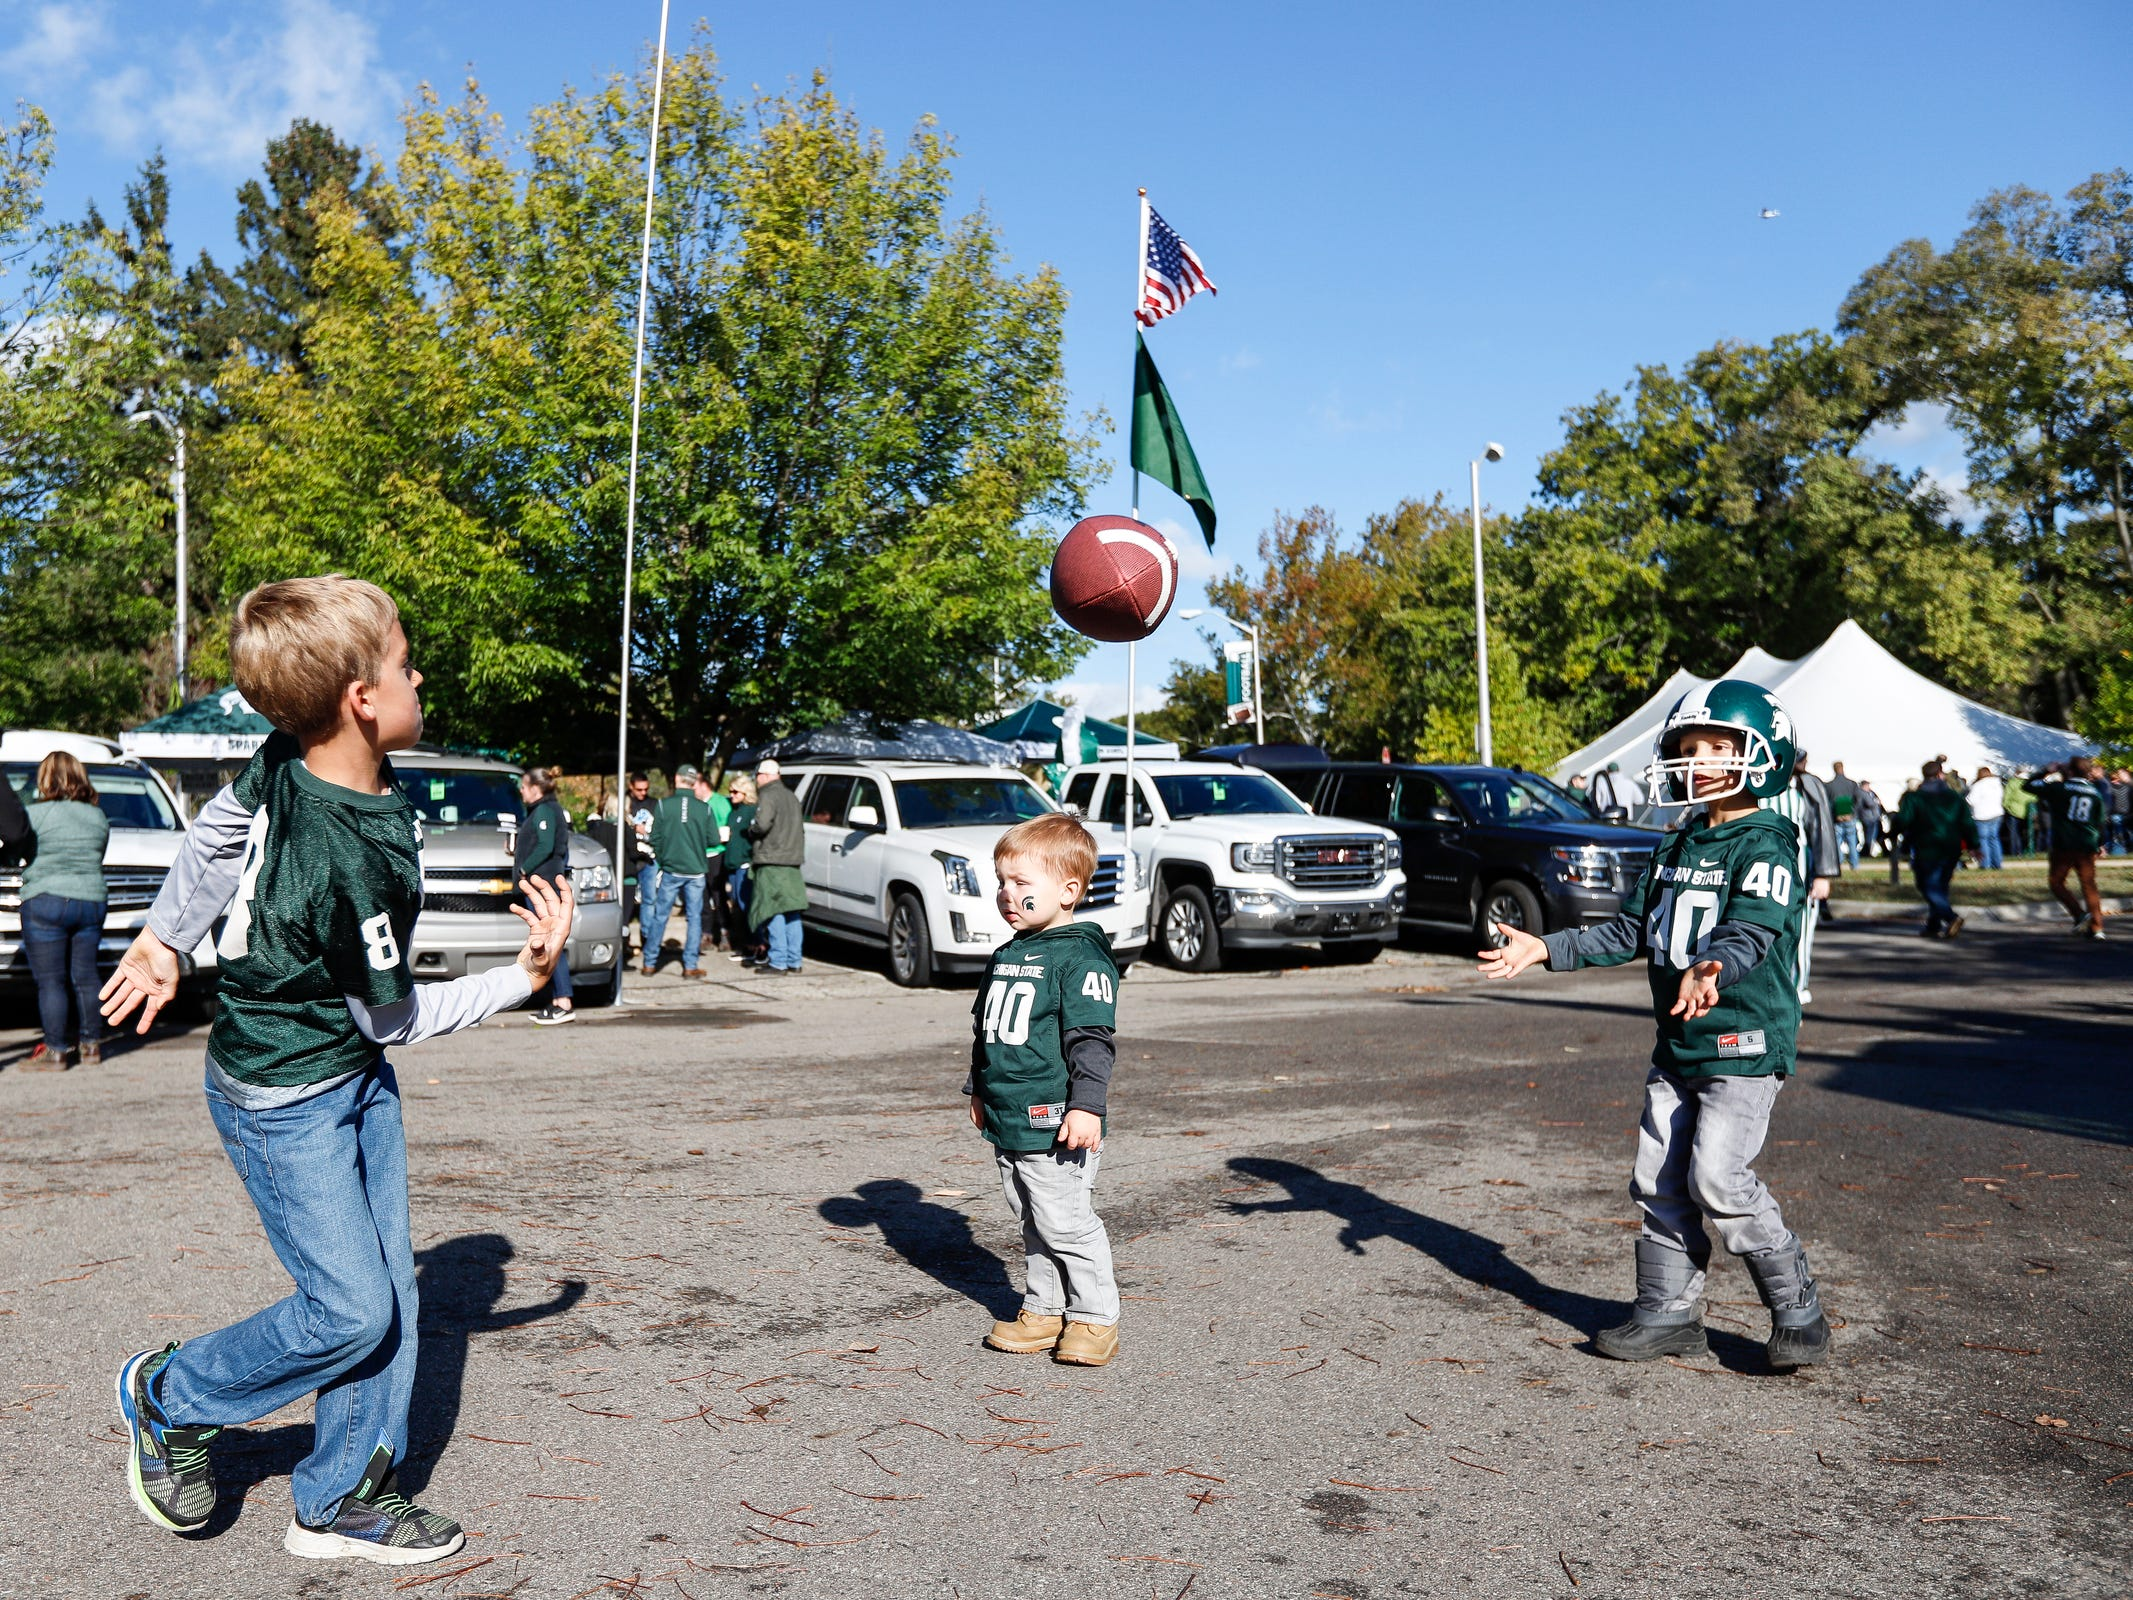 (From left) Lucas Halmekangas, 7, Tyler Spahr, 2, and Aiden Spahr, 5, all of South Lyon, play football while tailgating with parents outside of the Spartan Stadium on Saturday, Oct. 20, 2018.